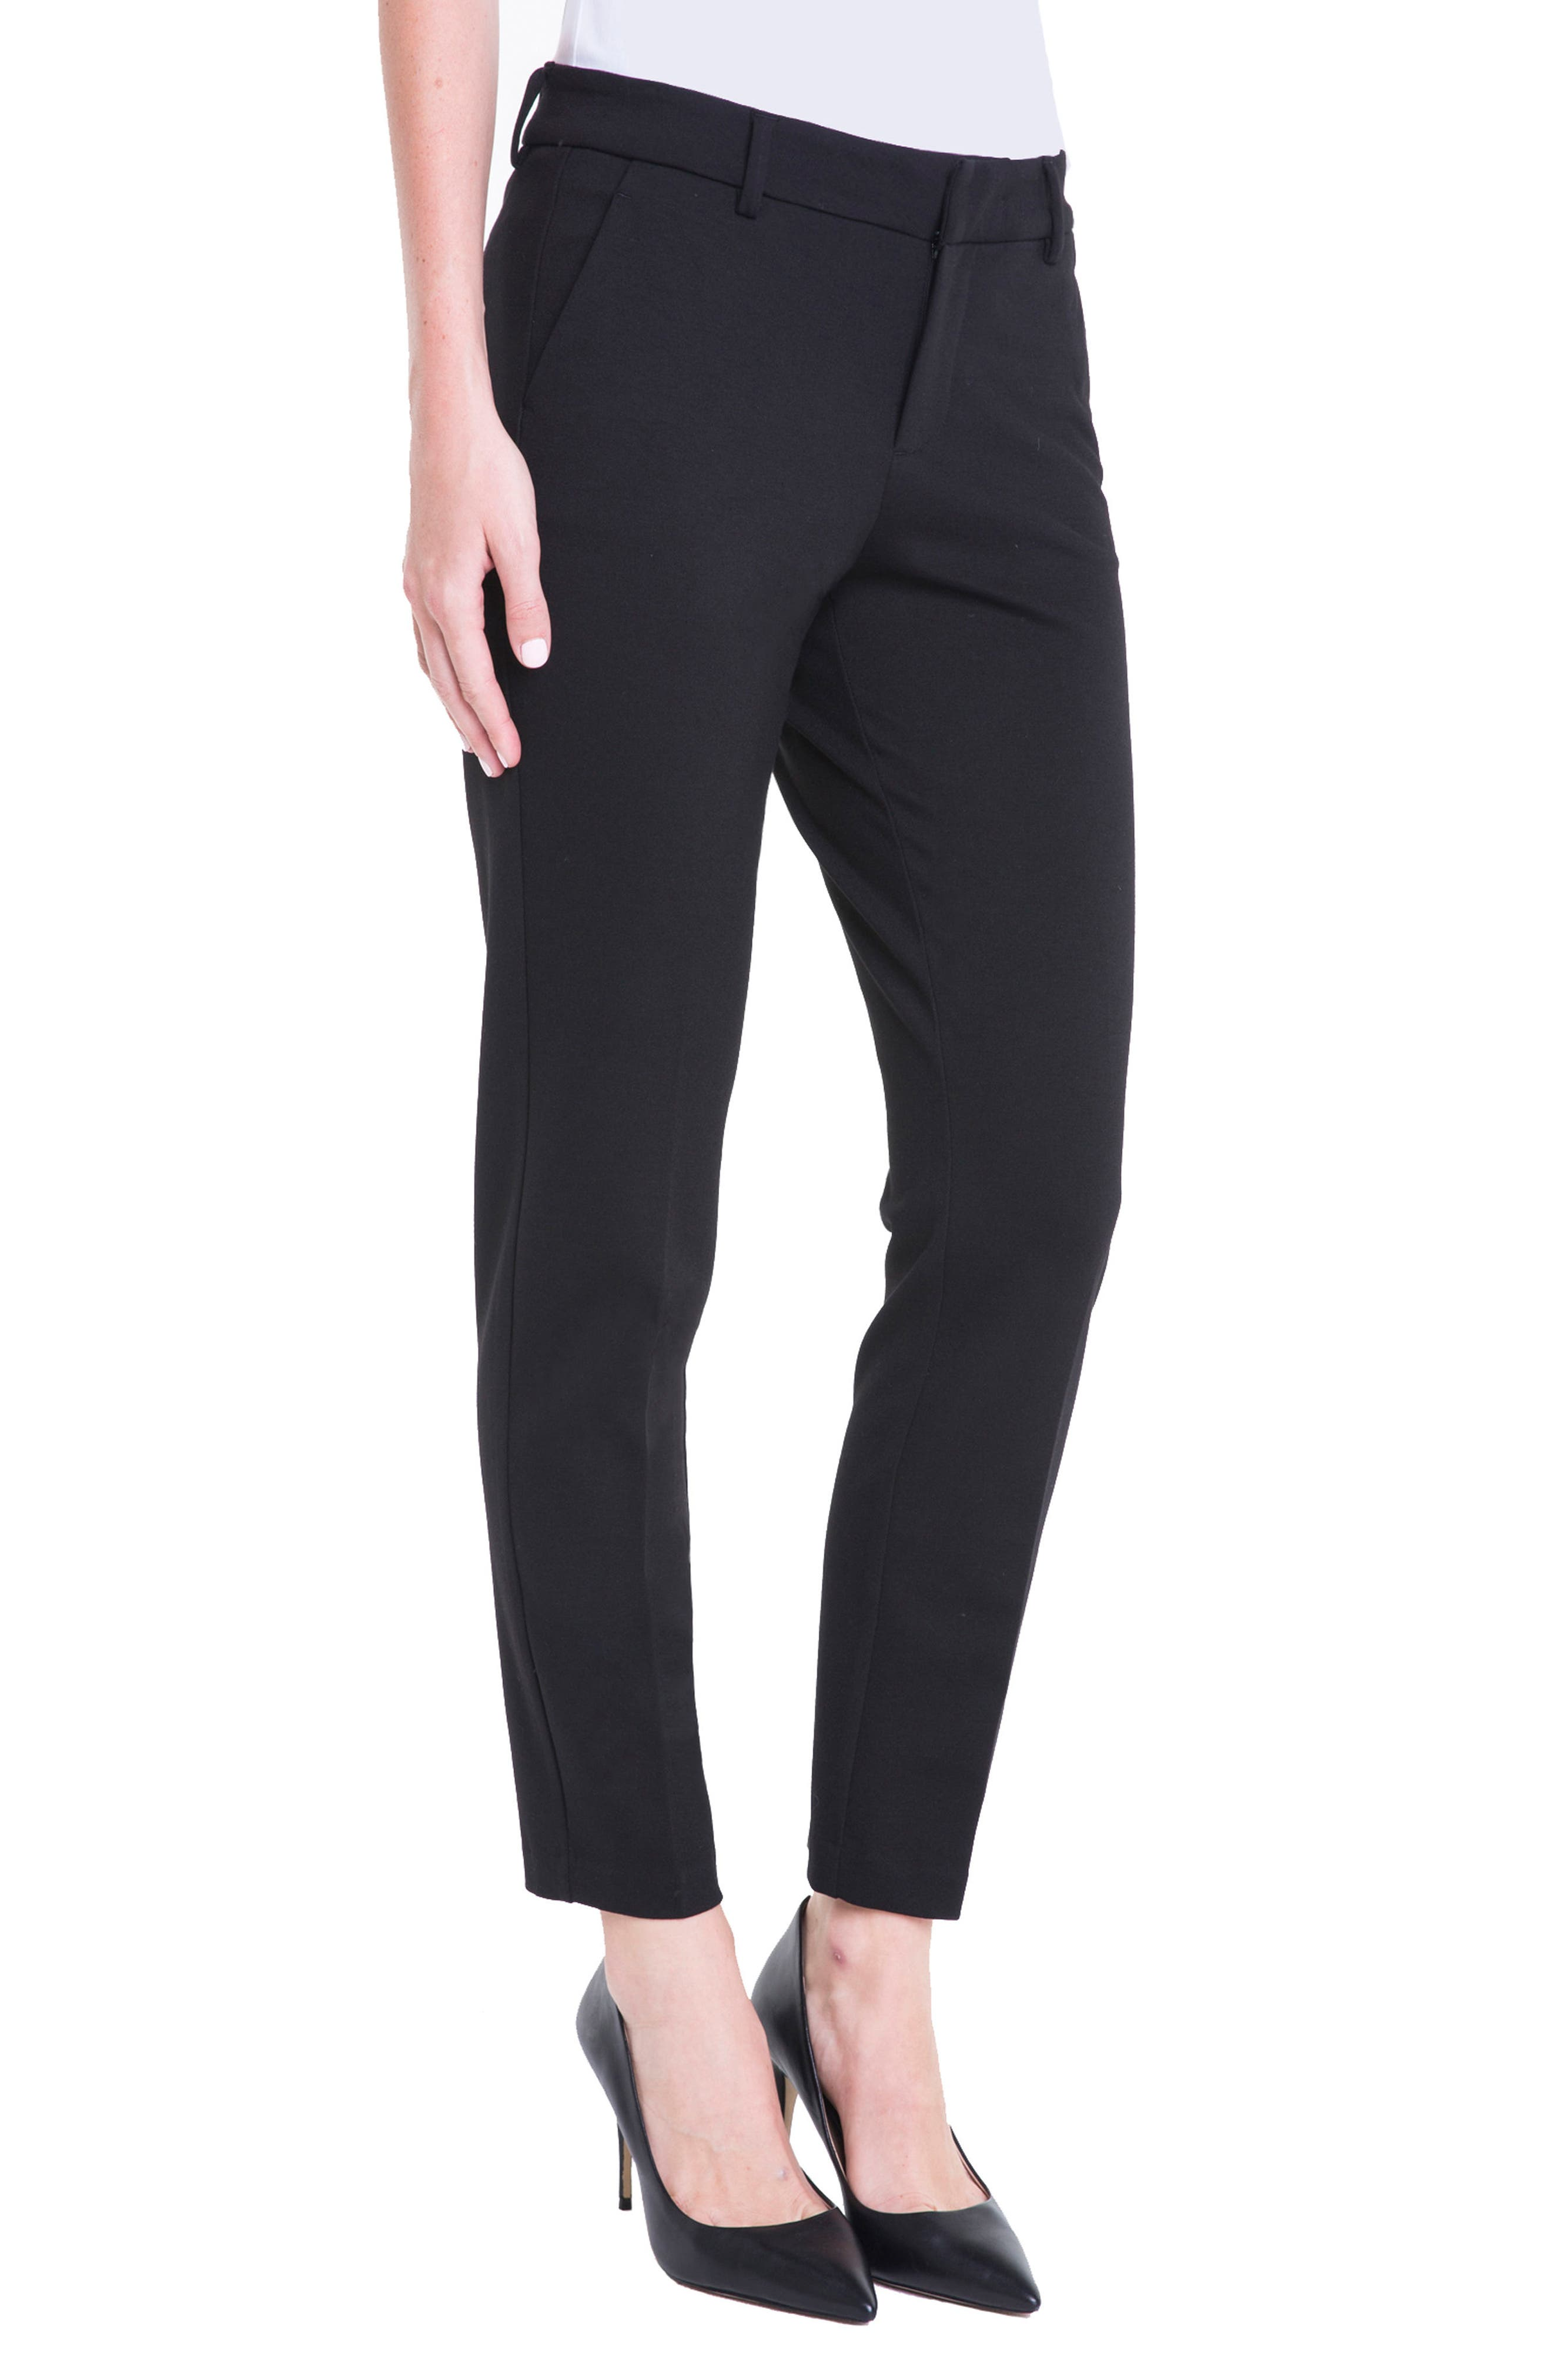 LIVERPOOL, Kelsey Knit Trousers, Alternate thumbnail 4, color, BLACK